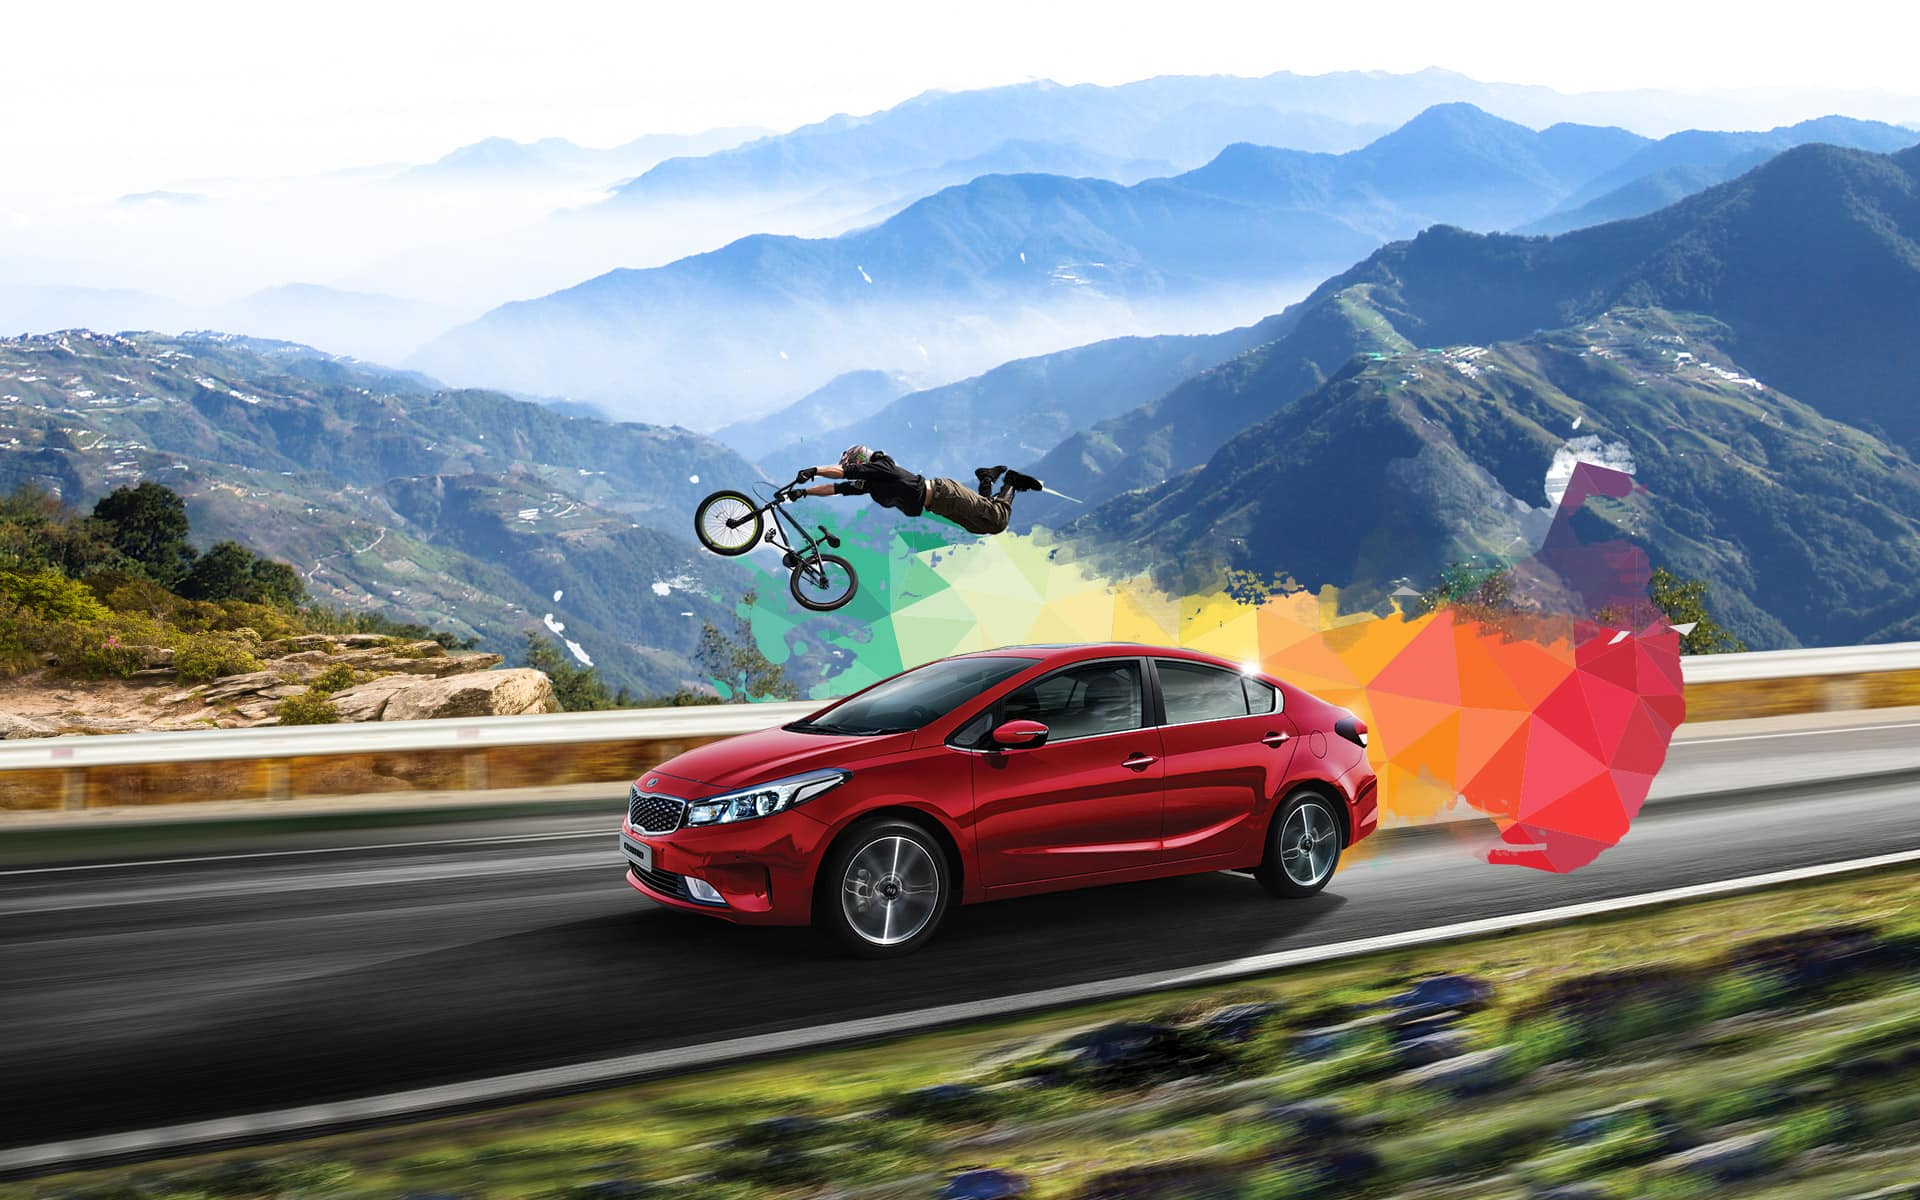 car that s fun to drive the balance of design technical excelence class leading innovations are delicately combined in an affordable package to